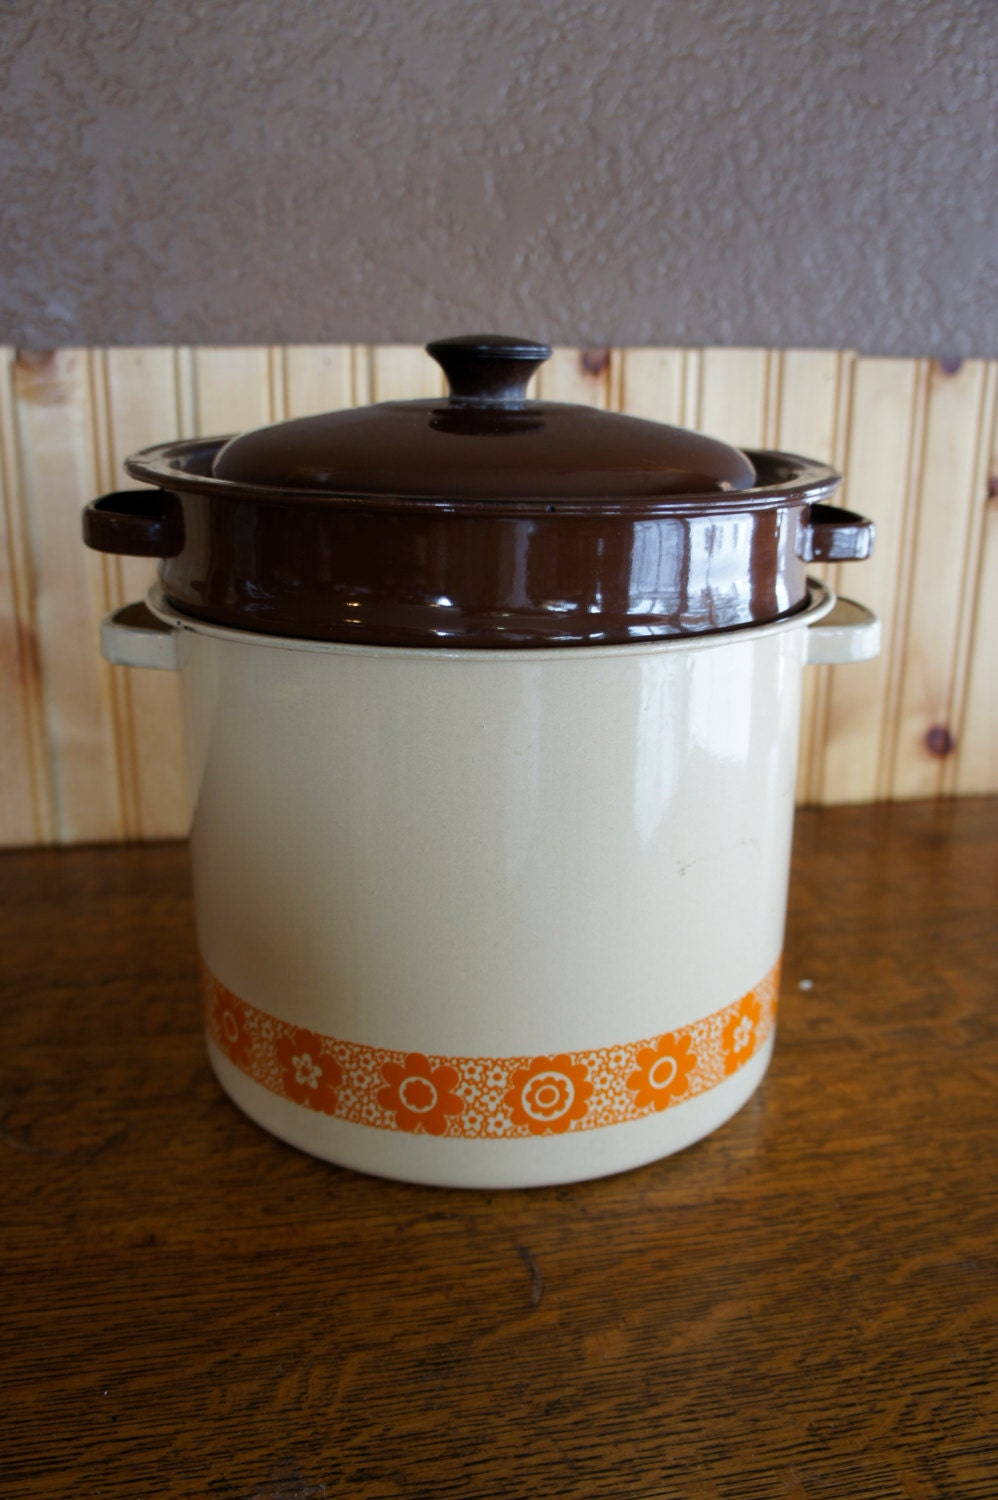 Enamel stock pot with colander and steamer inserts lid